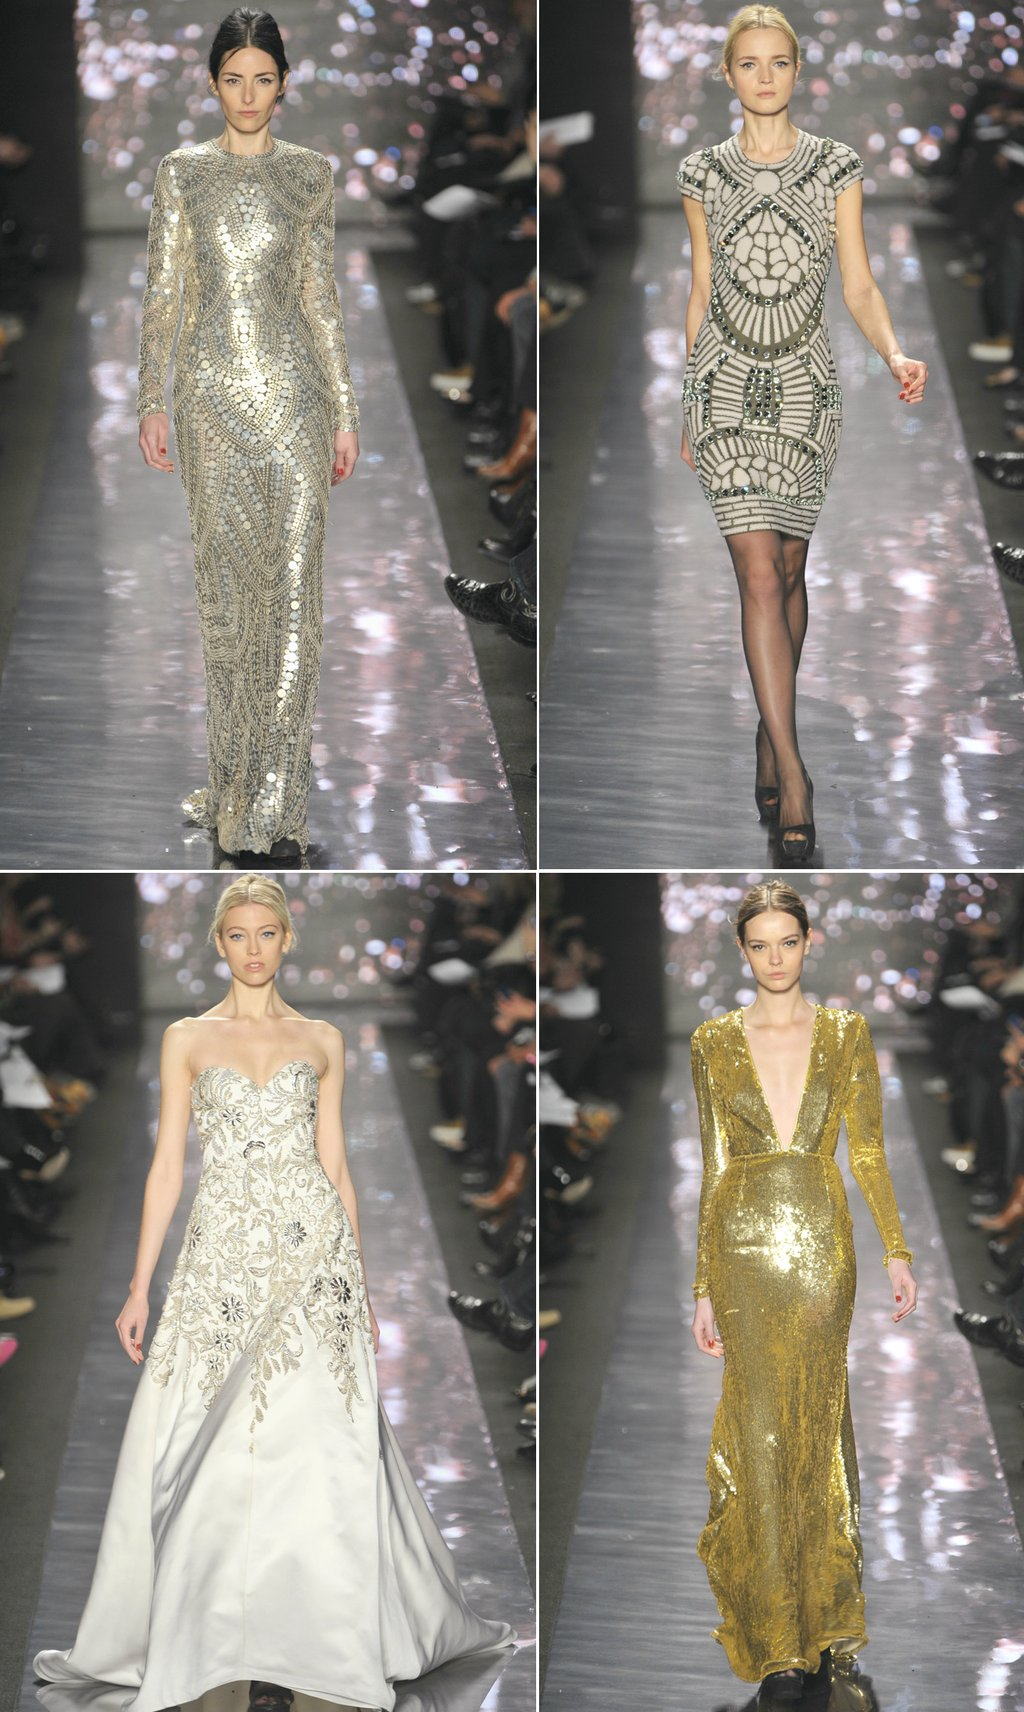 Chic-2012-bride-wedding-dress-inspiration-spring-2012-rtw-naeem-khan-gold-silver-gowns.full